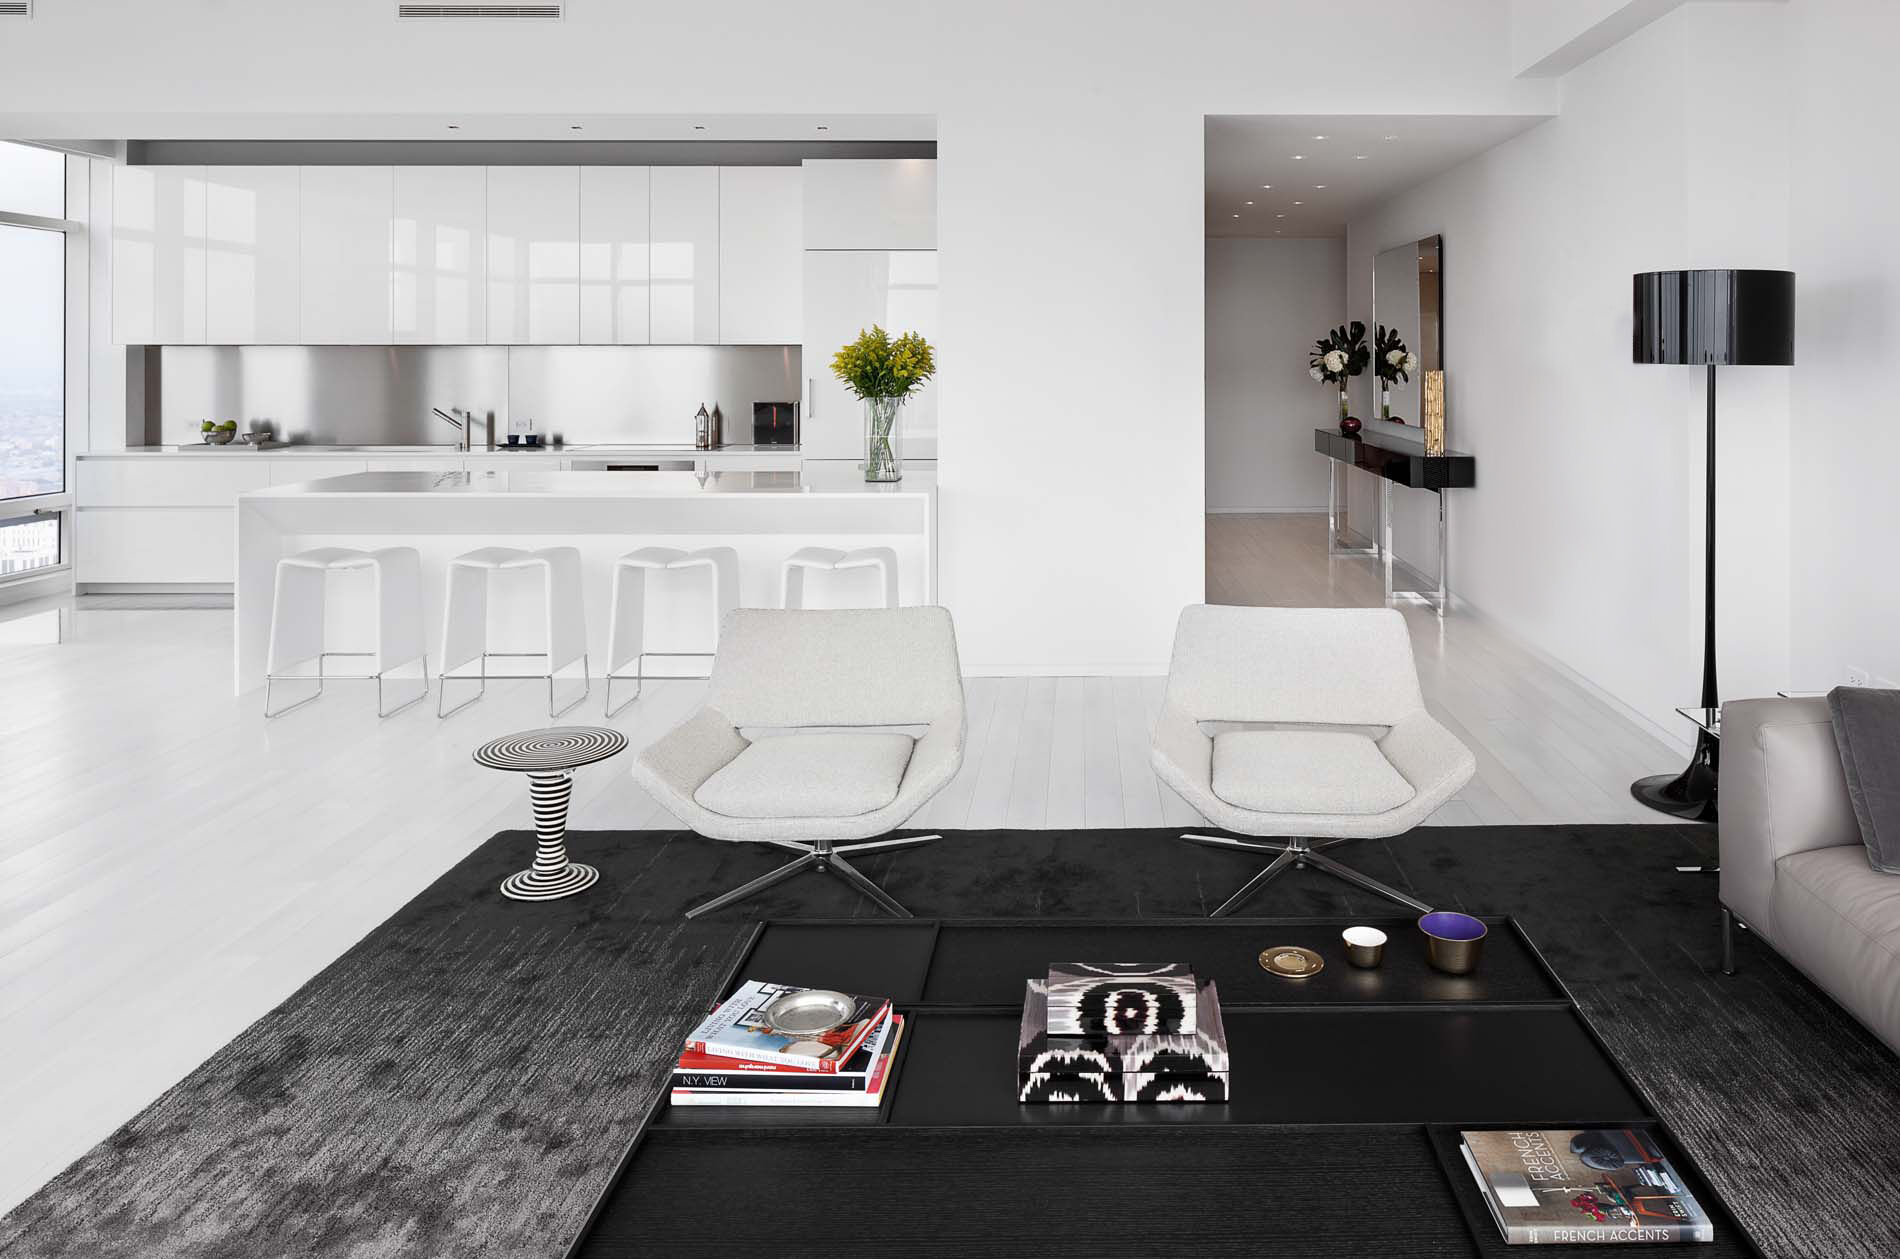 KITCHEN AND LIVING ROOM: Glossy Polyester Lacquer with stainless stell blacksplash kitchen by Boffi; Corian kitchen island custom designed by Giusi Mastro;  B&B Italia sofa; Kasthall carpet; lamp by Flos; coffee table by B&B Italia; flooring by LV Wood